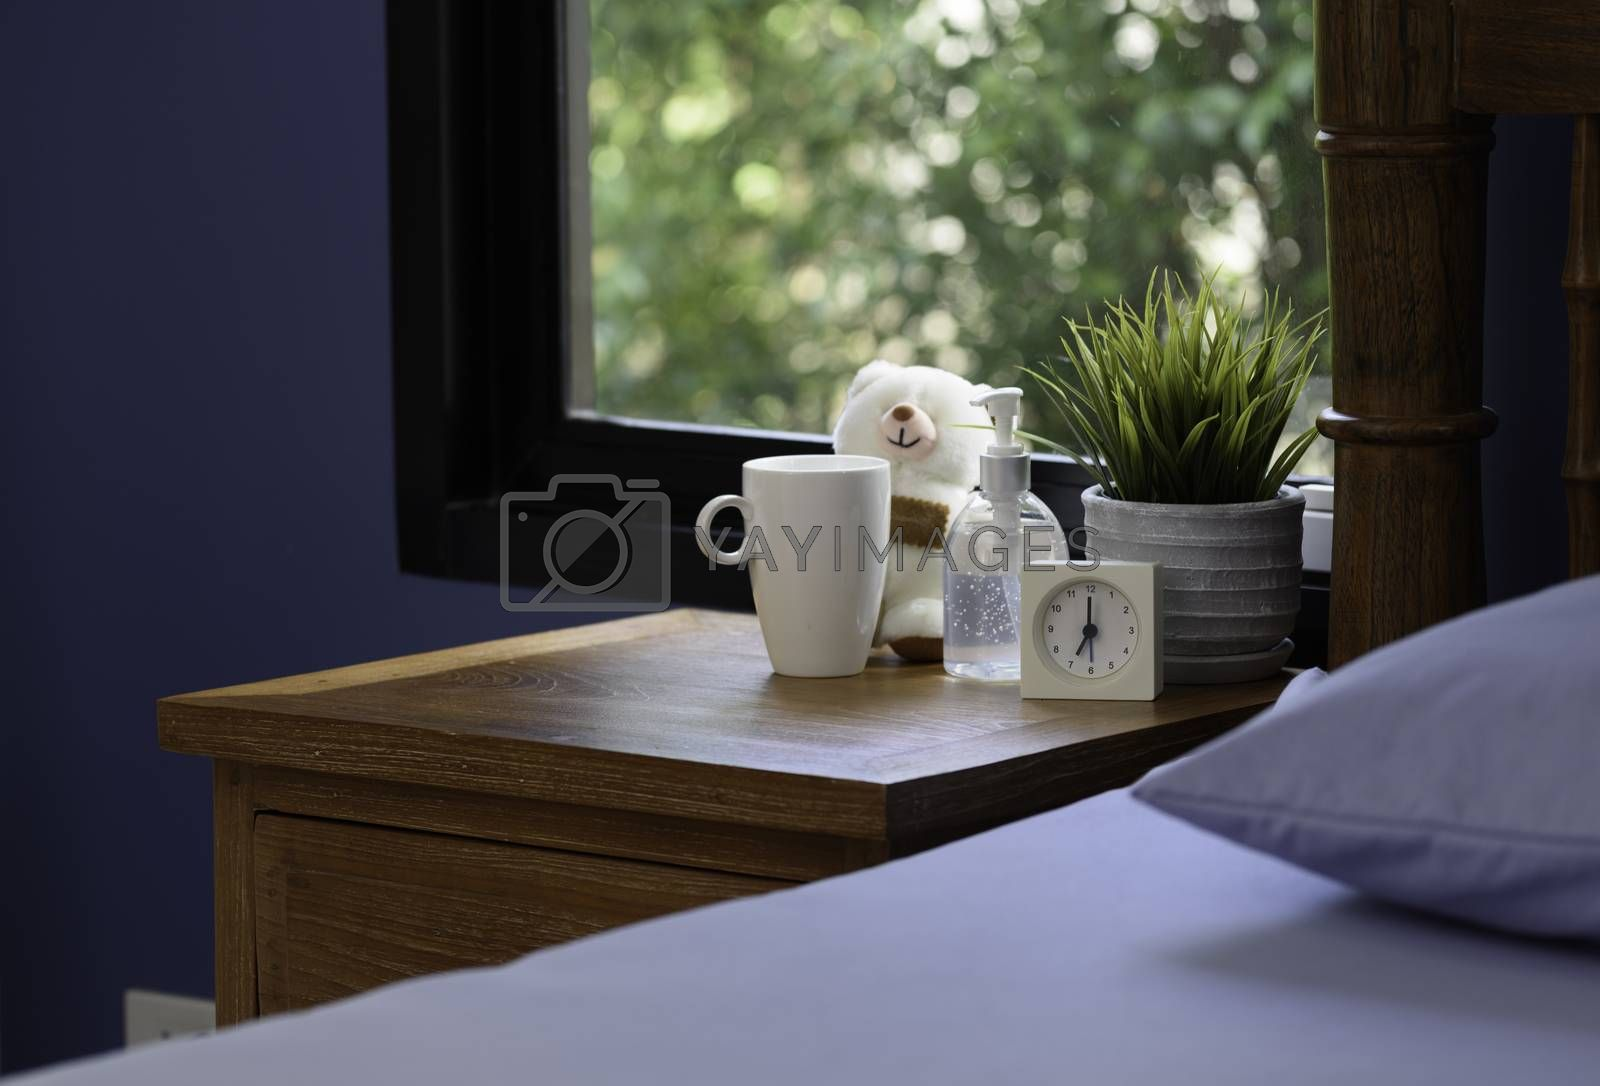 Hand sanitizer,white cup,teddy bear and alarm clock on wood table in blue bedroom while Covid-19  home quarantine .